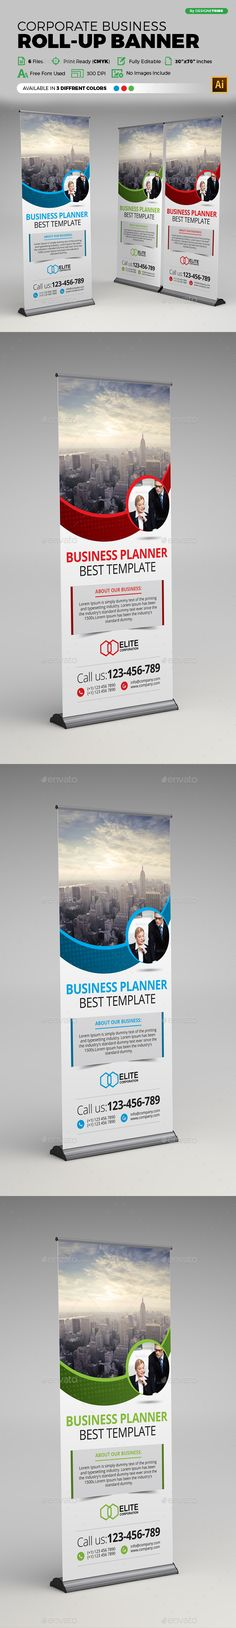 Corporate Business Roll-up Banner Template Vector EPS, AI #design Download: http://graphicriver.net/item/corporate-business-rollup-banner/14156759?ref=ksioks